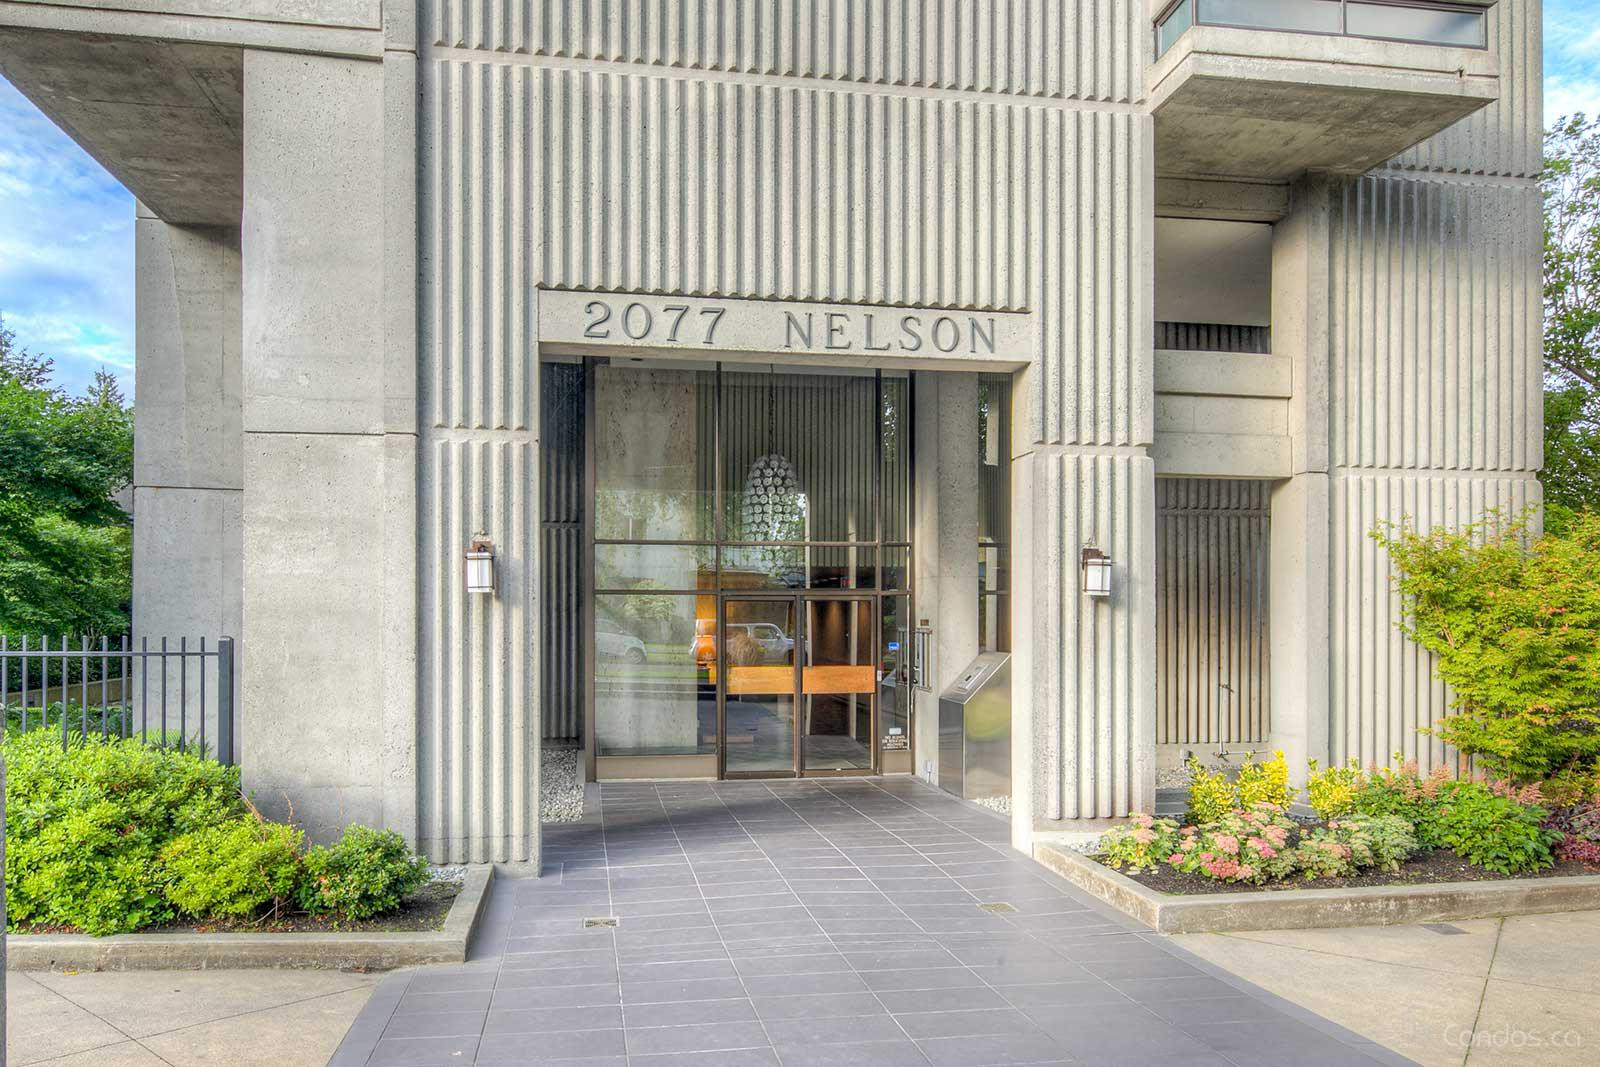 2077 Nelson at 2077 Nelson St, Vancouver 0